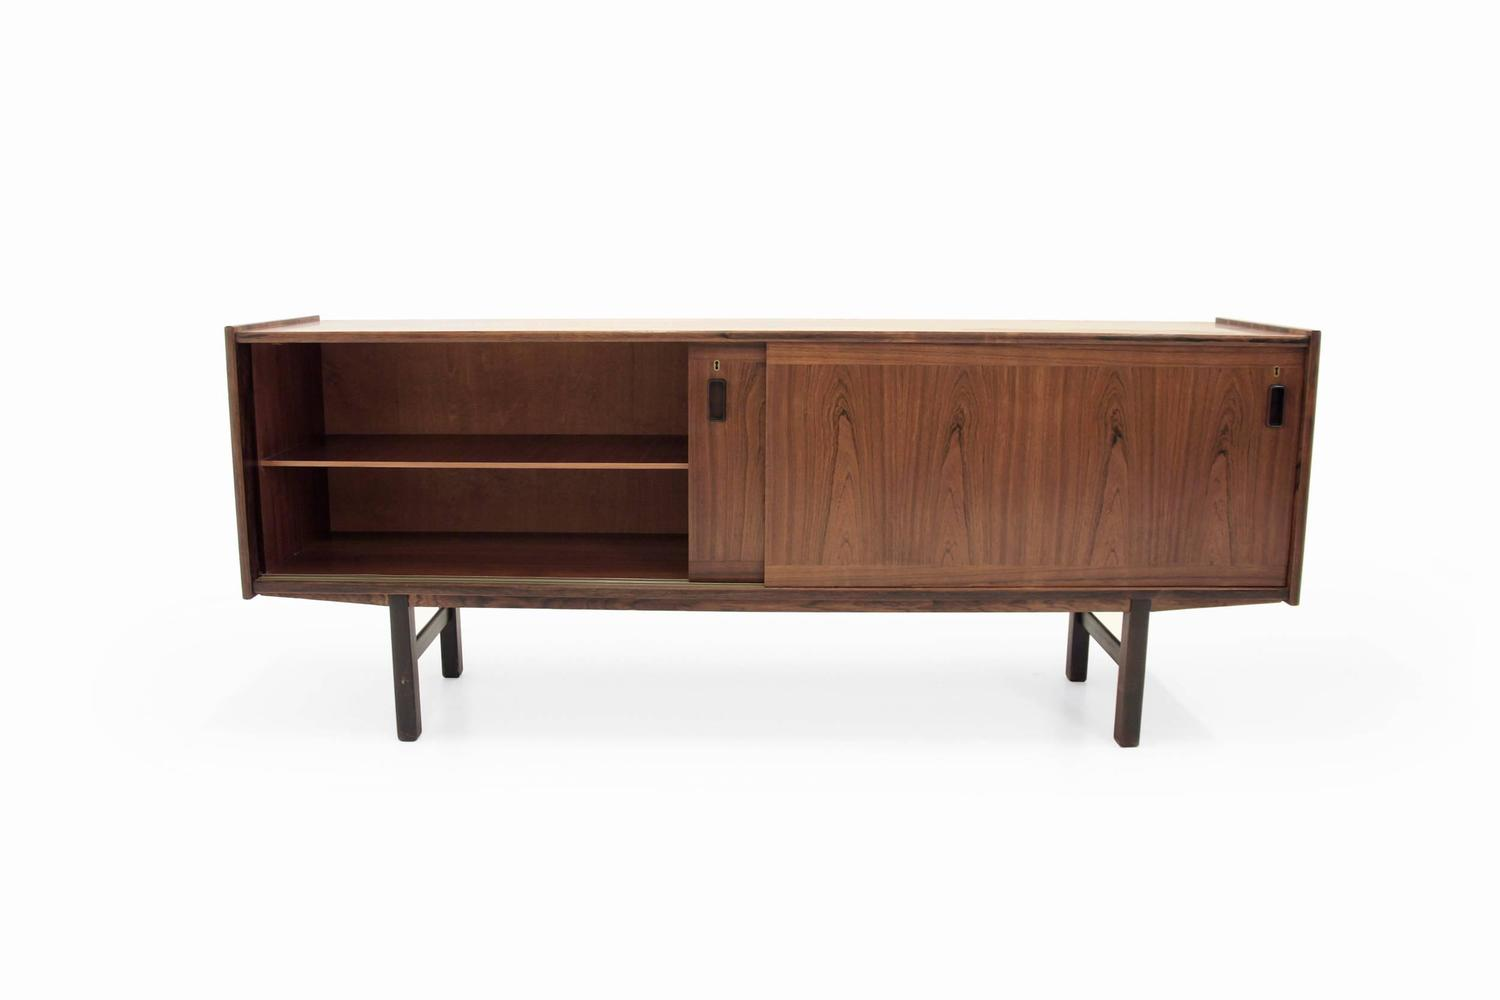 Scandinavian midcentury sideboard at 1stdibs for Sideboard scandi